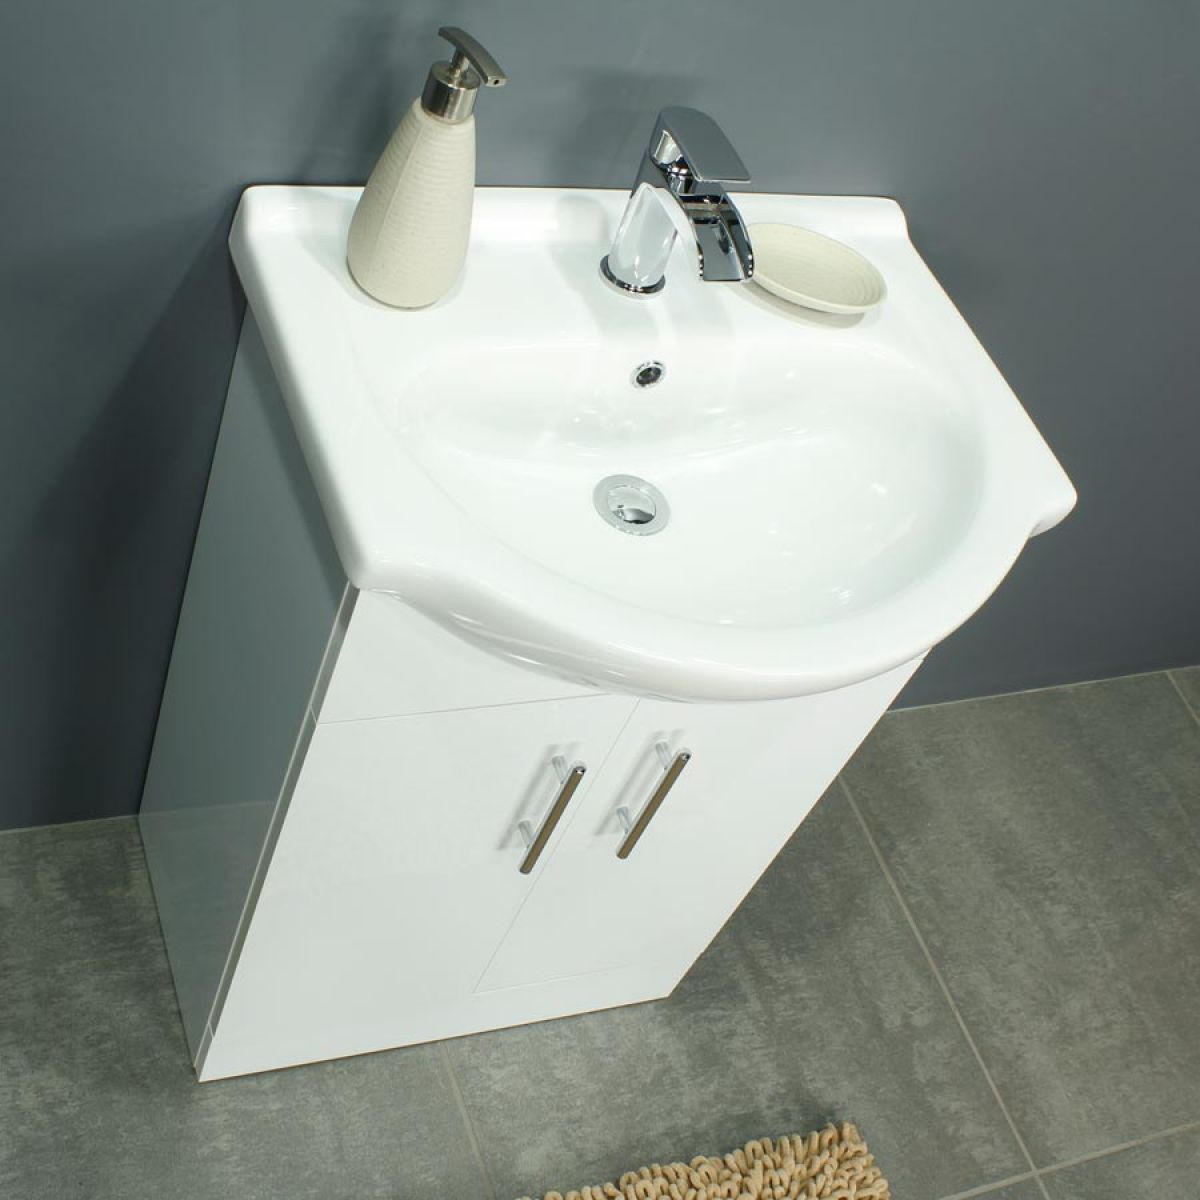 RAK Series 600 Back To Wall Toilet and 550 Series Gloss White Vanity Unit Doors Closed